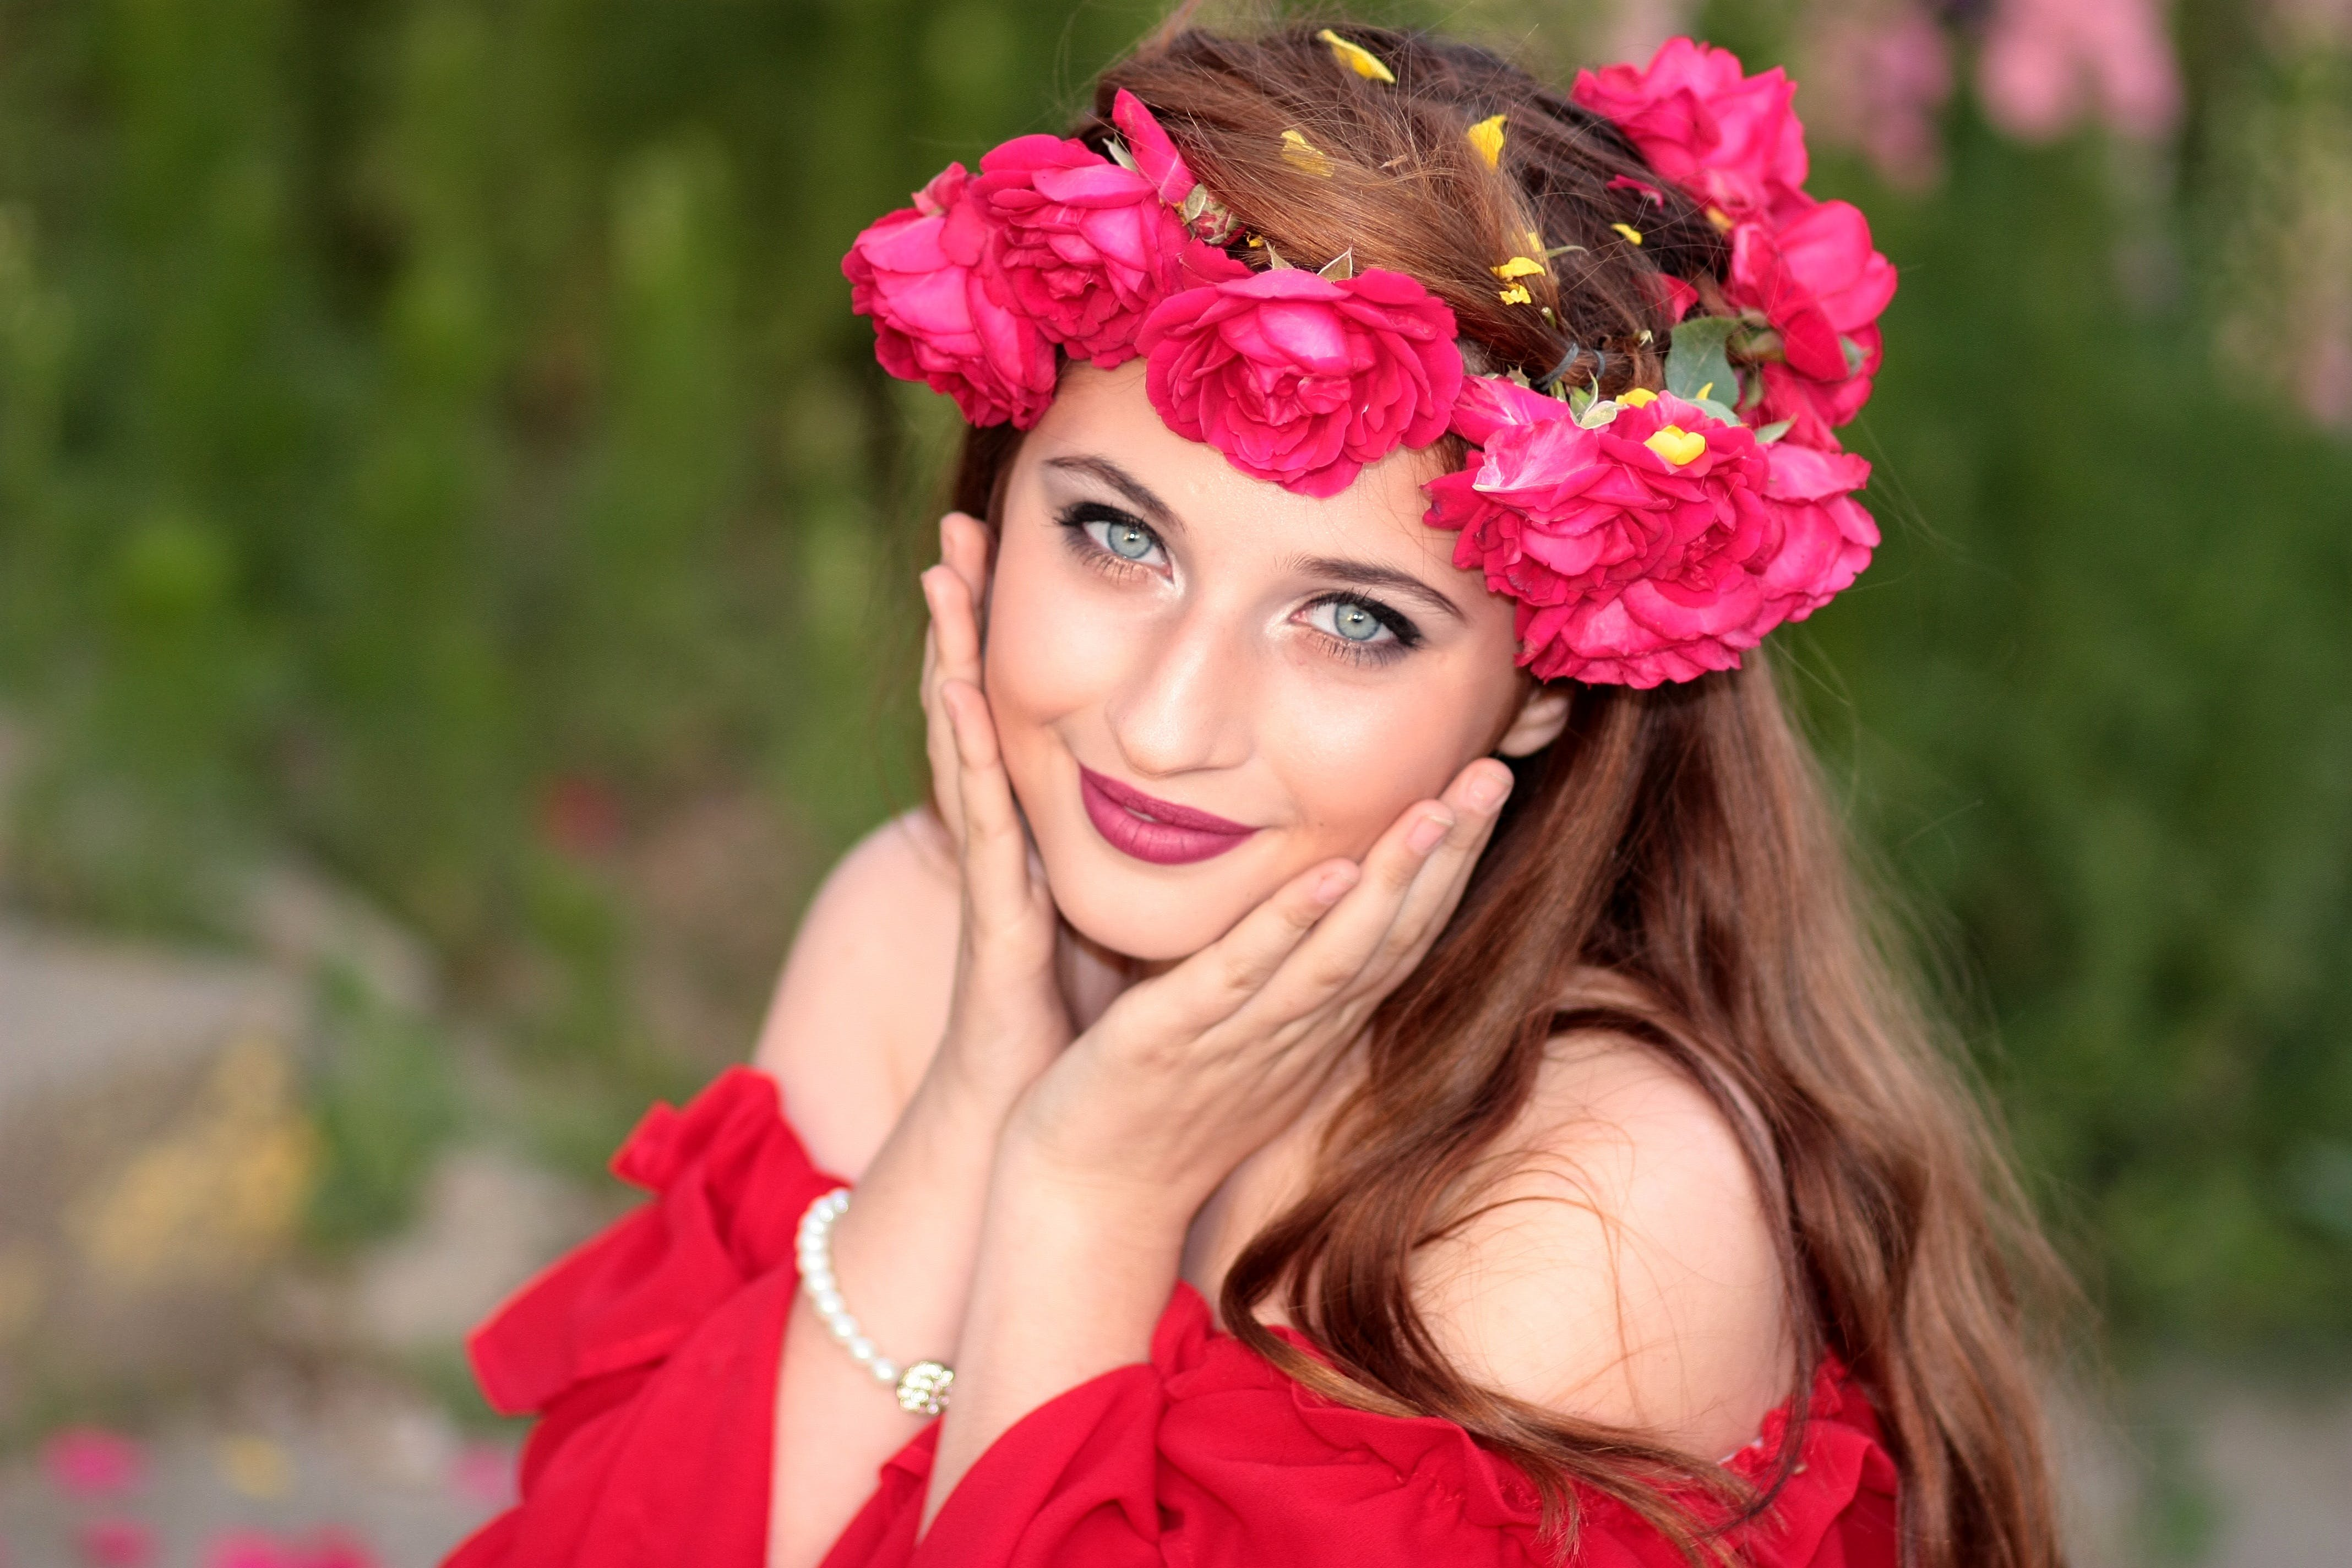 Woman in Off Shoulder Blouse and Pink Rose Headdress